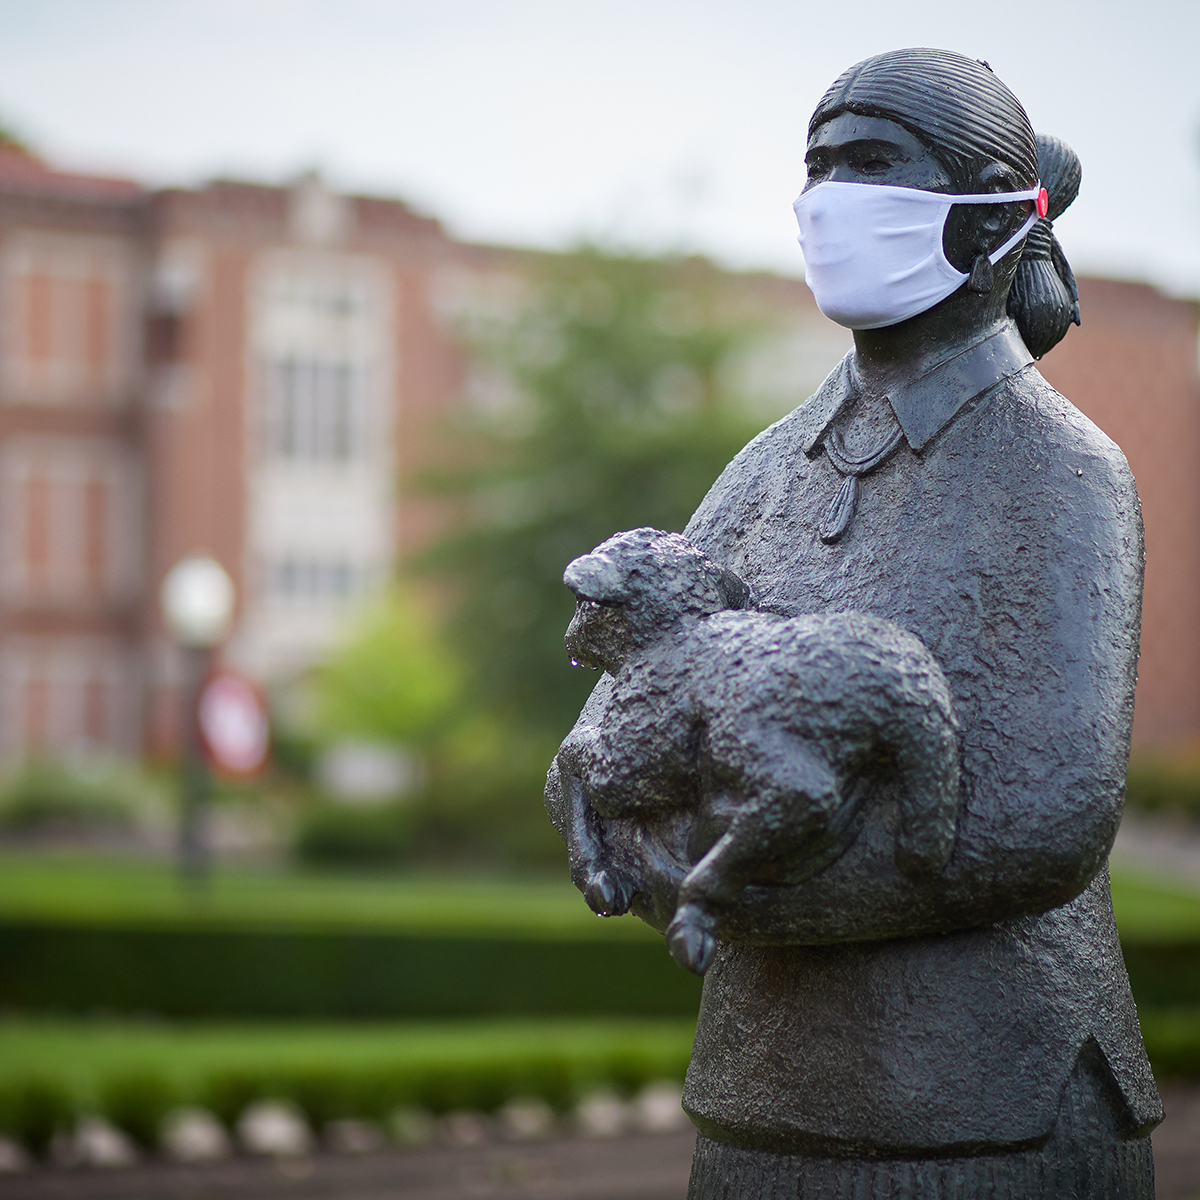 Statue with mask